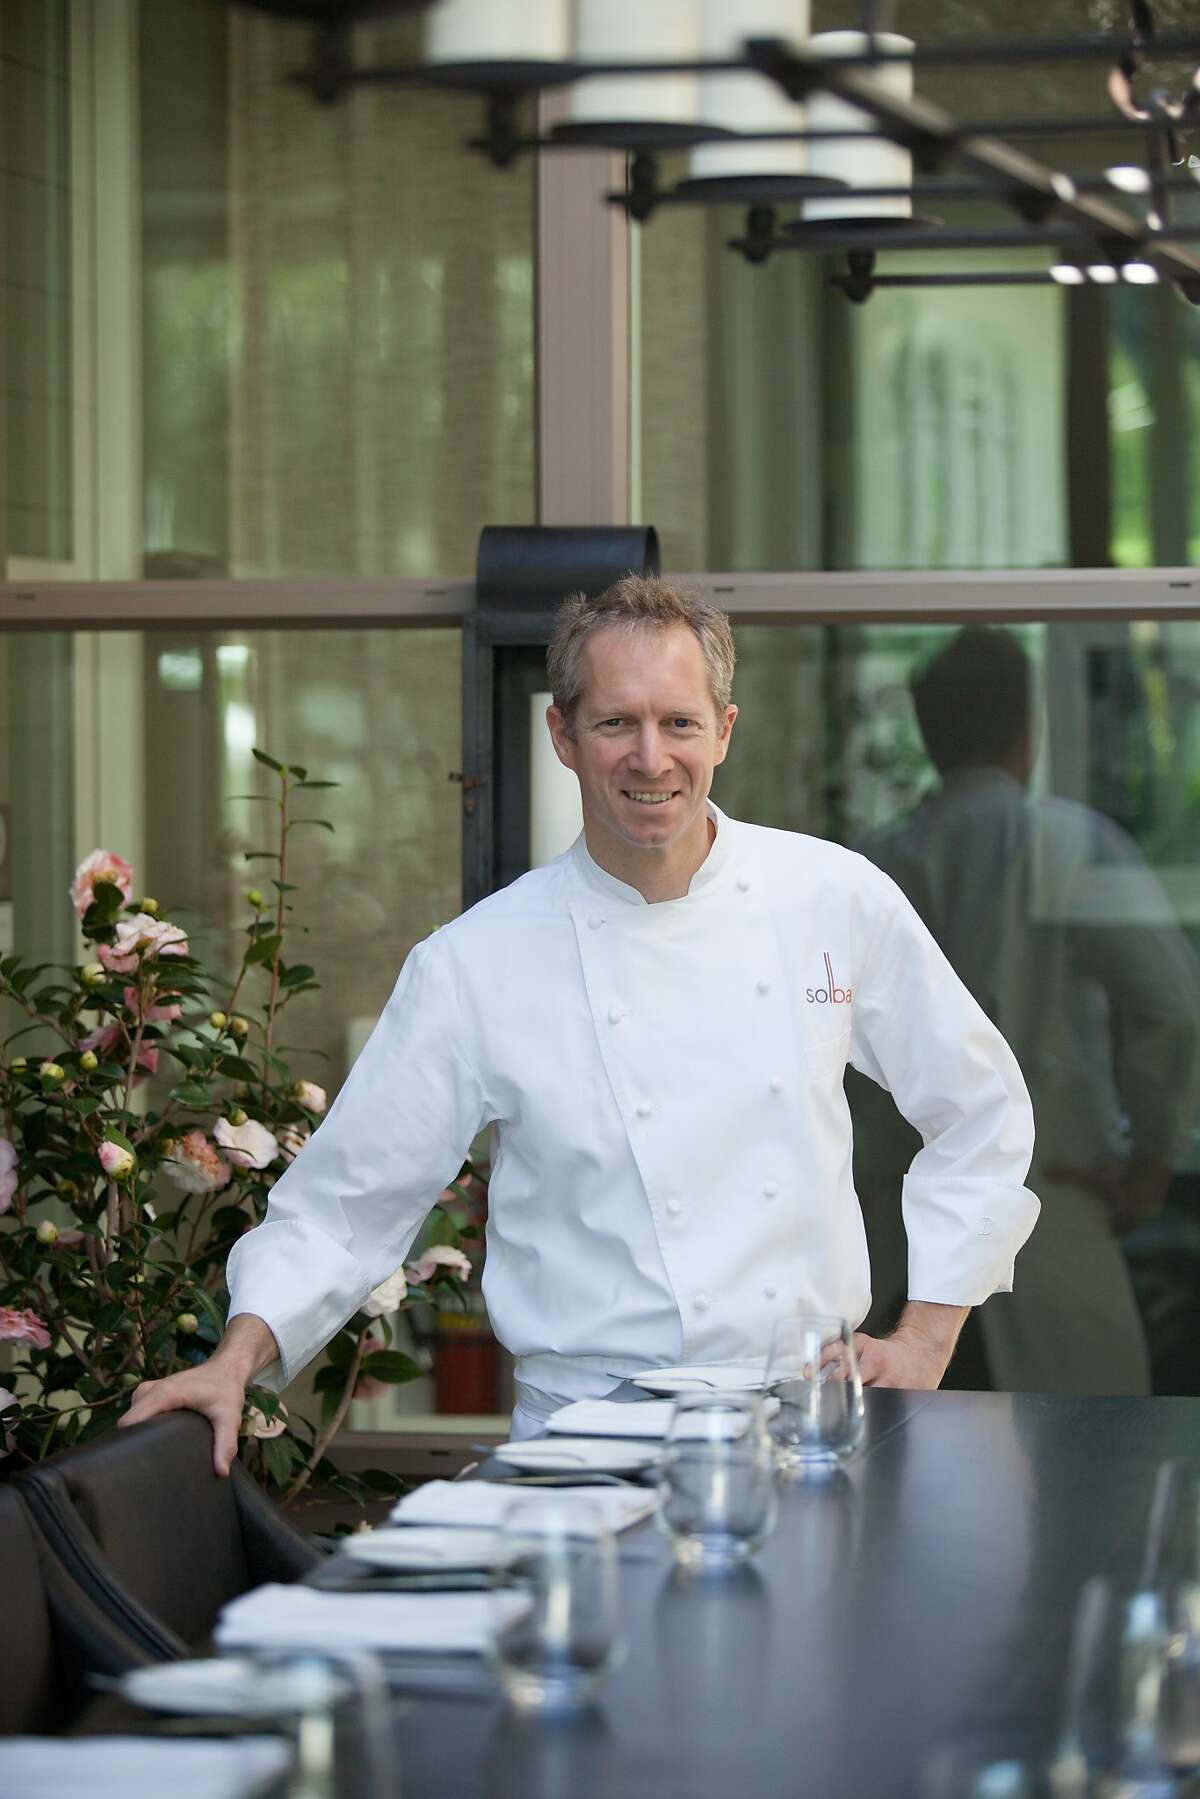 Chef Brandon Sharp of Sol Bar at the Solage Resort in Calistoga.